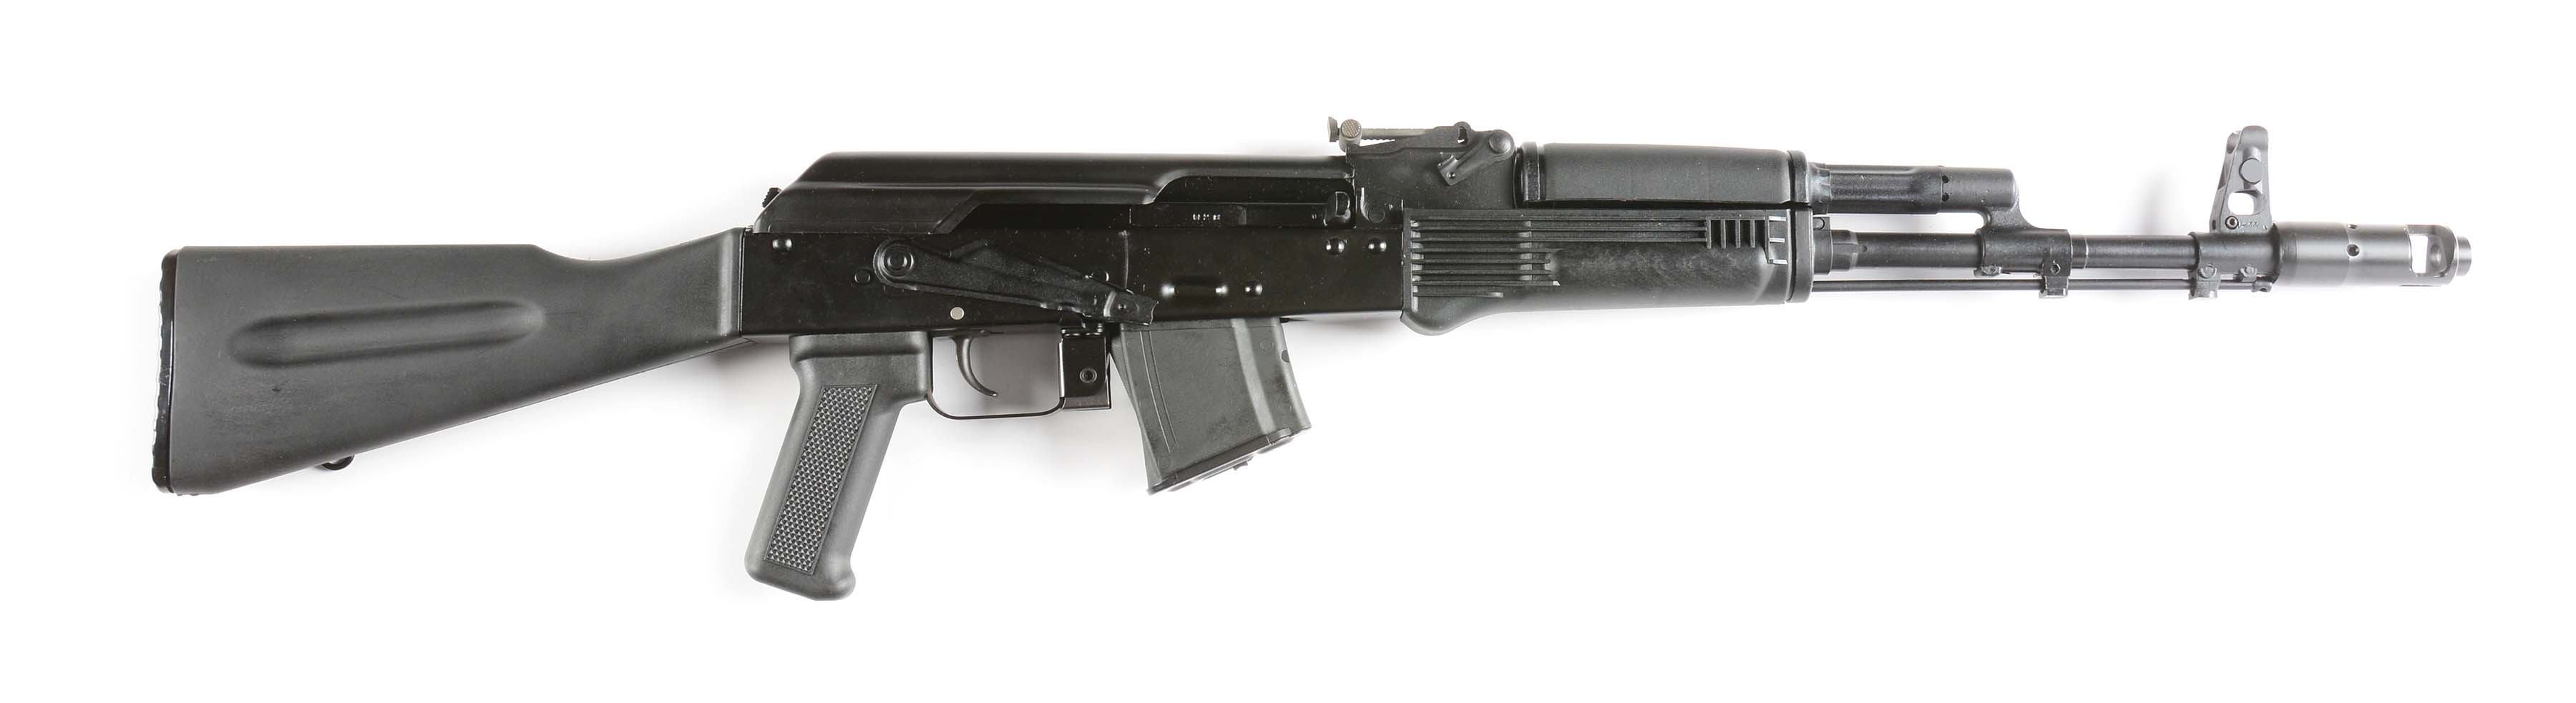 Lot Detail - (M) RUSSIAN SAIGA SEMI-AUTOMATIC RIFLE WITH ...